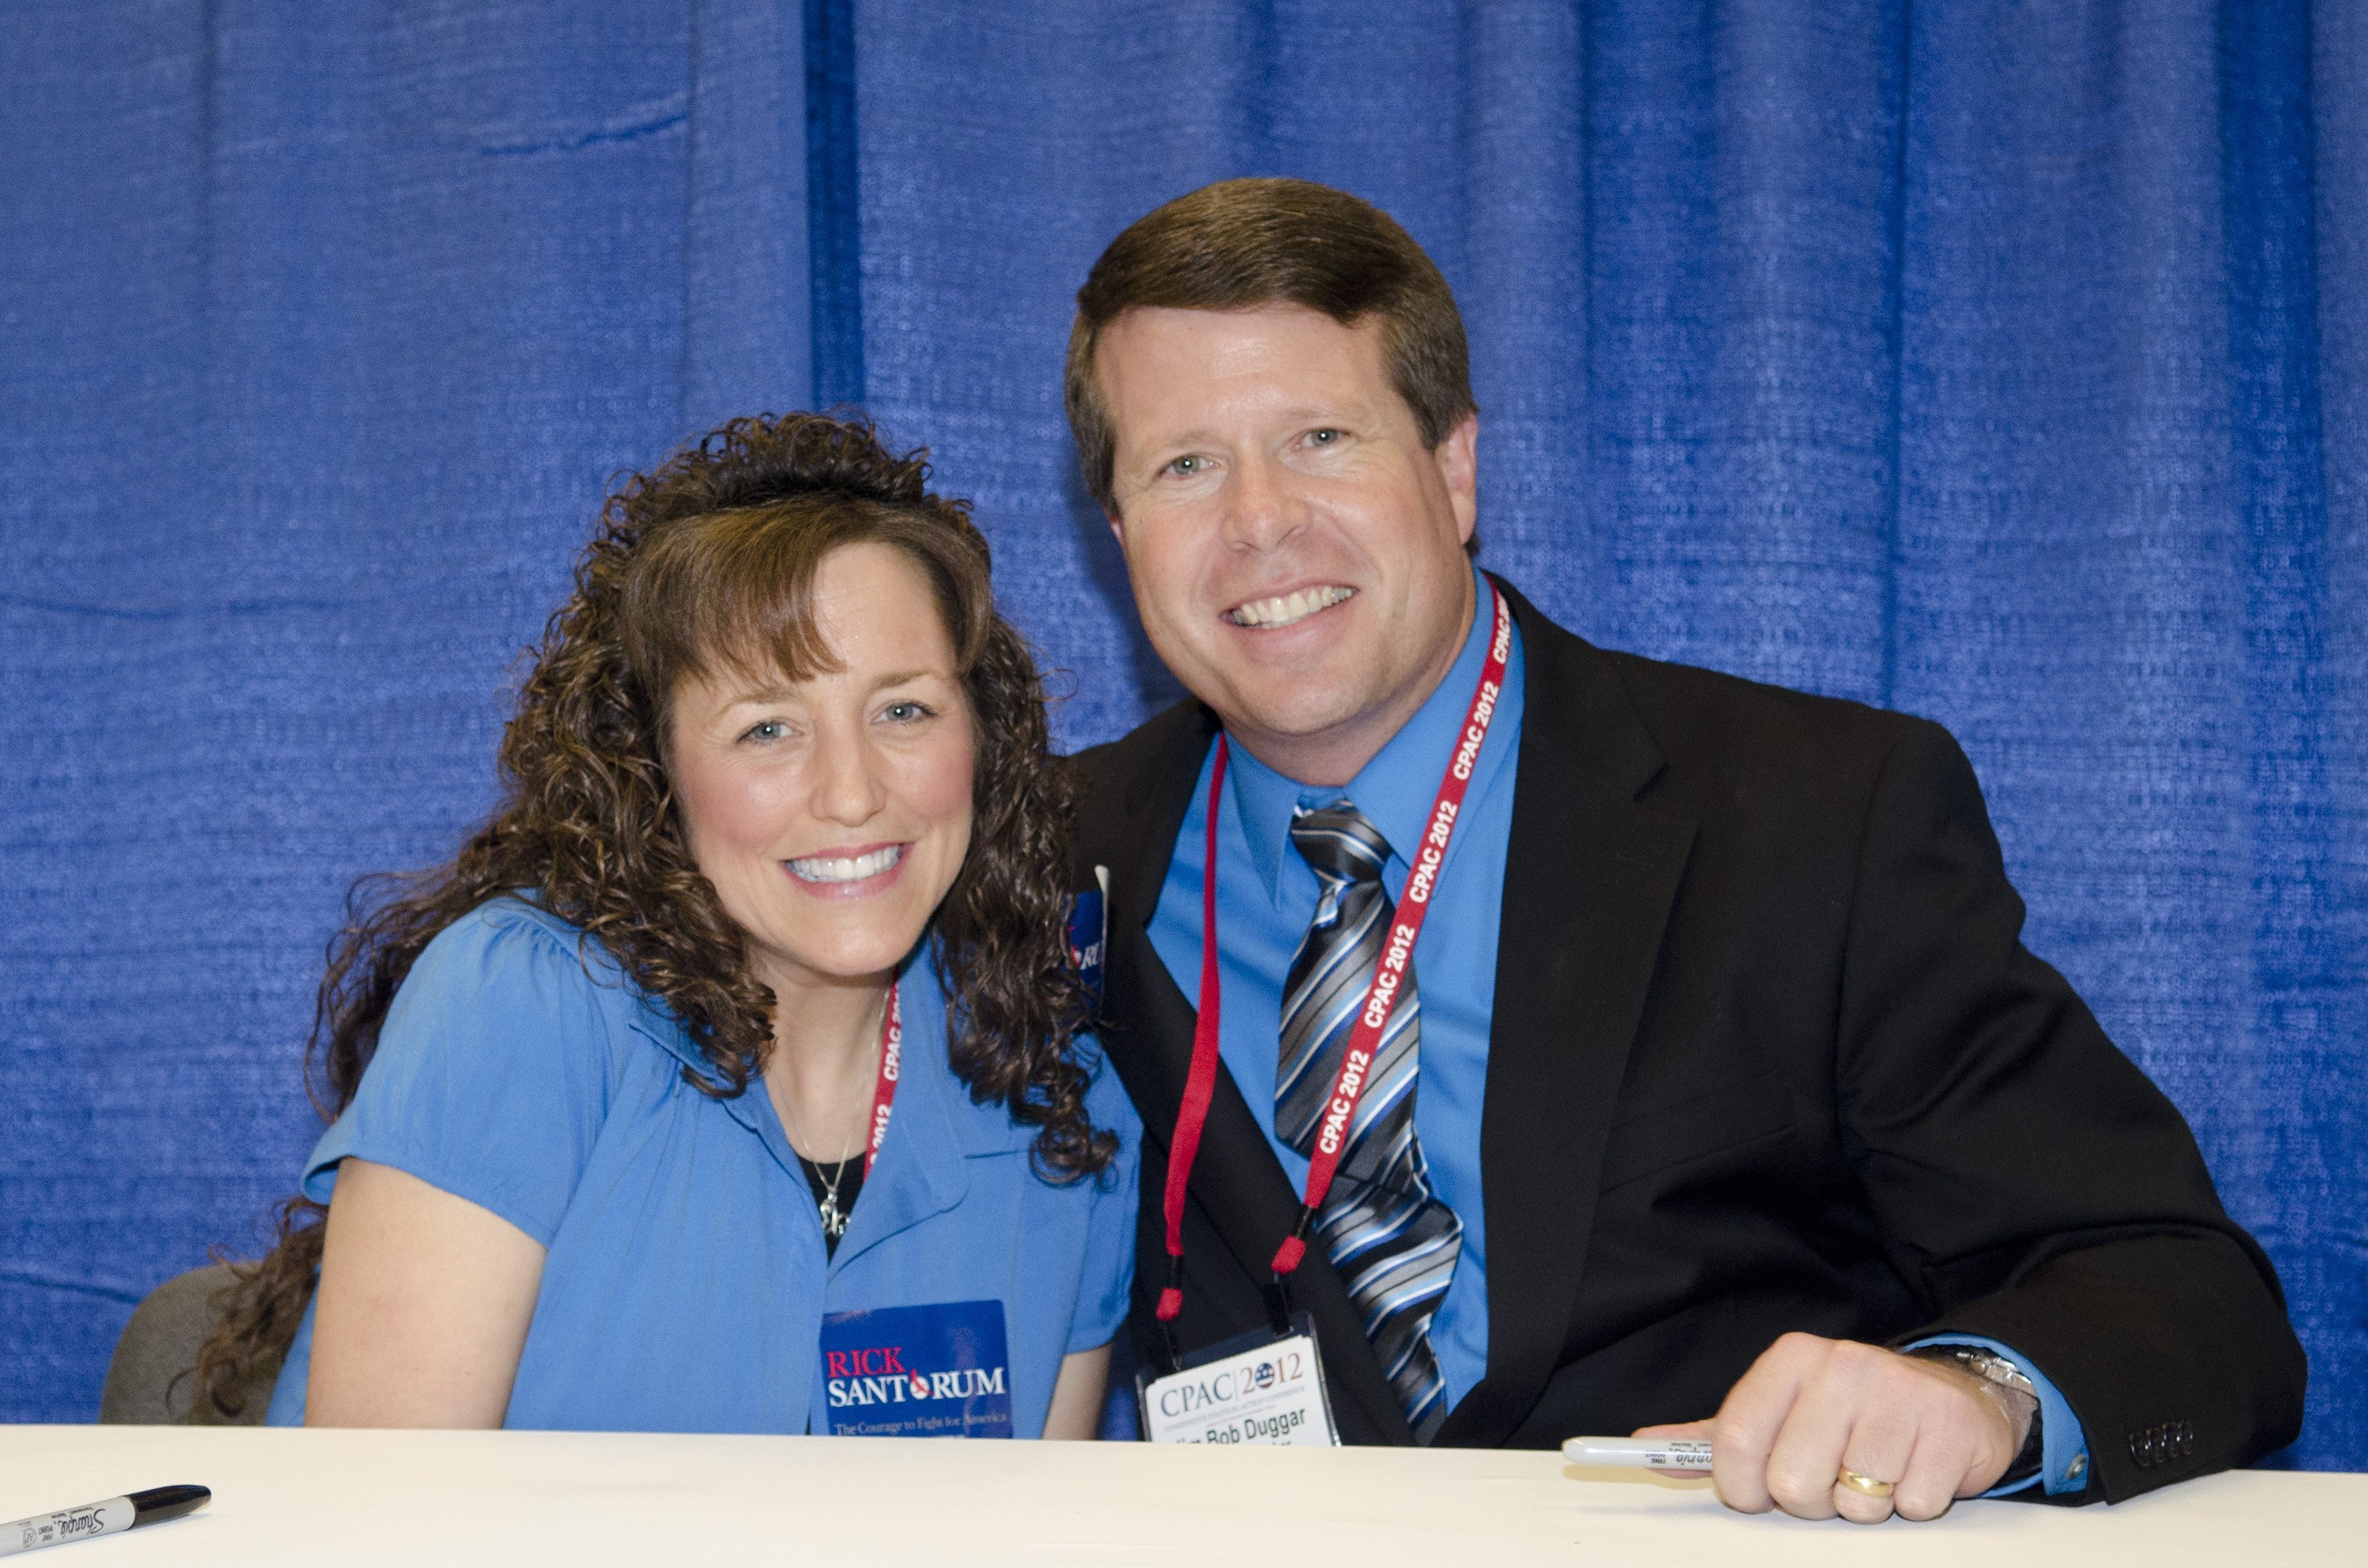 Michelle Duggar and Jim Bob Duggar at the Conservative Political Action Conference (CPAC) on February 10, 2012. | Photo: GettyImages